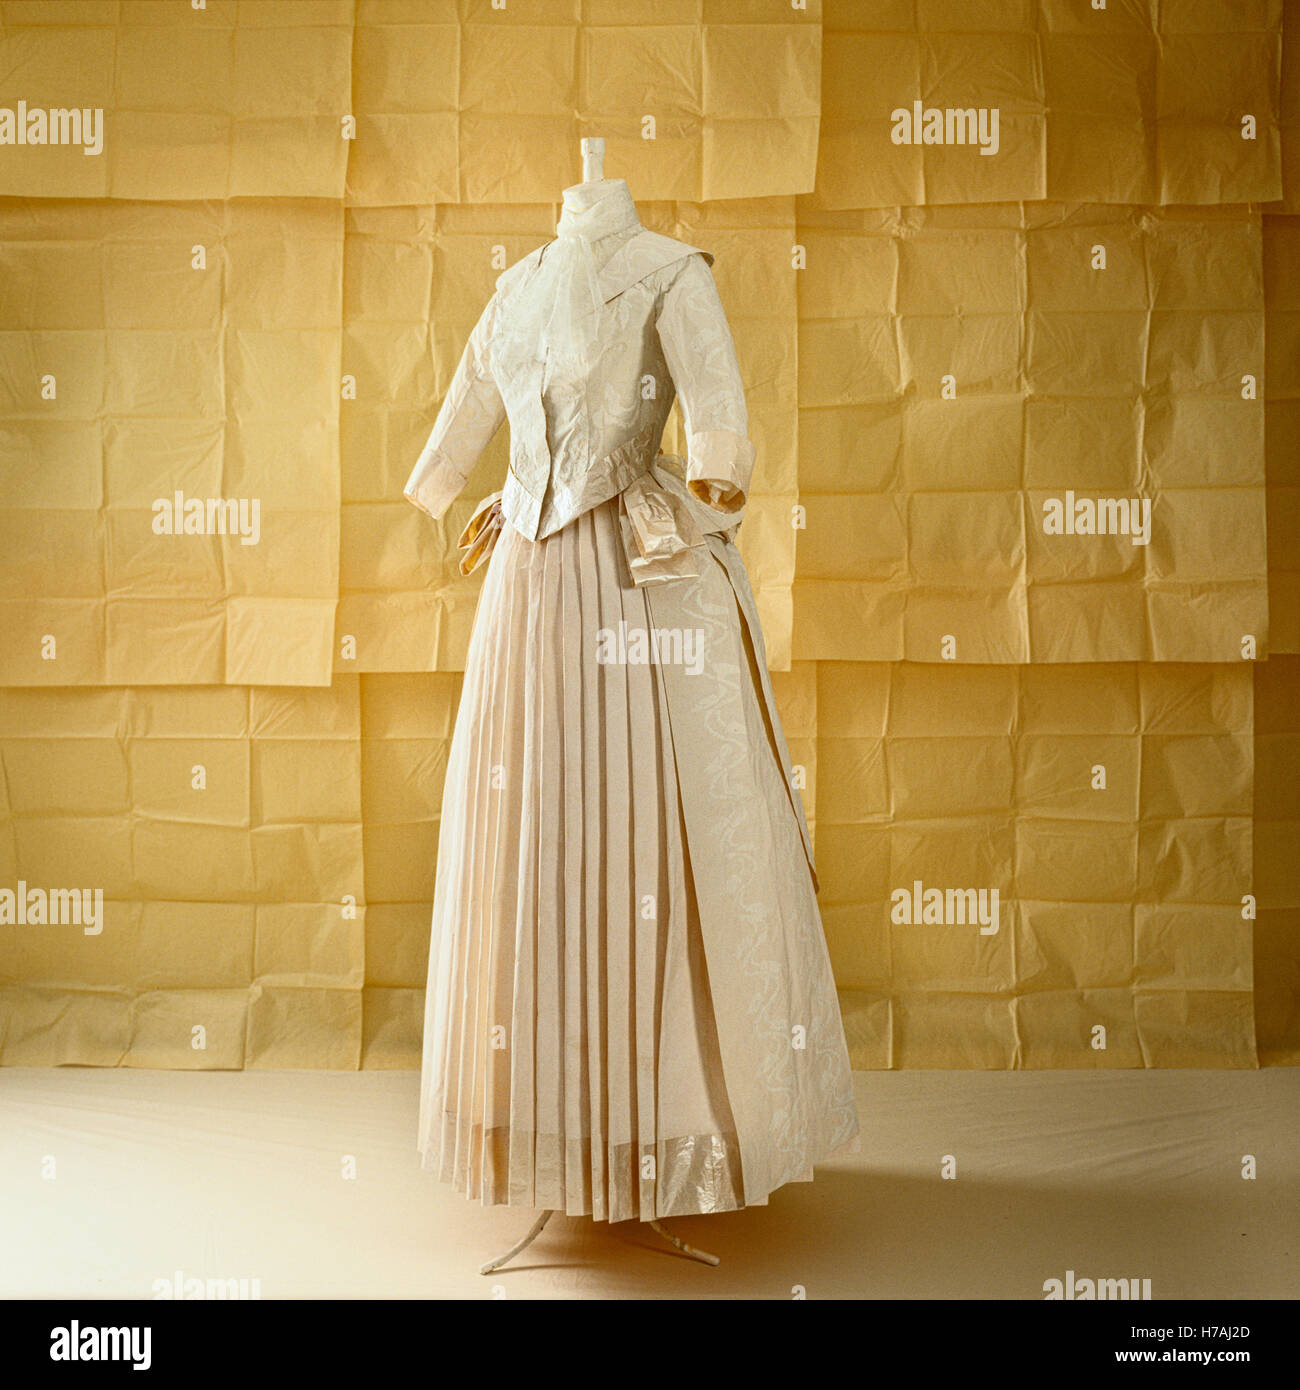 Pleated skirt with jacket, historical replica paper dress by Isabelle de Borchgrave - Stock Image